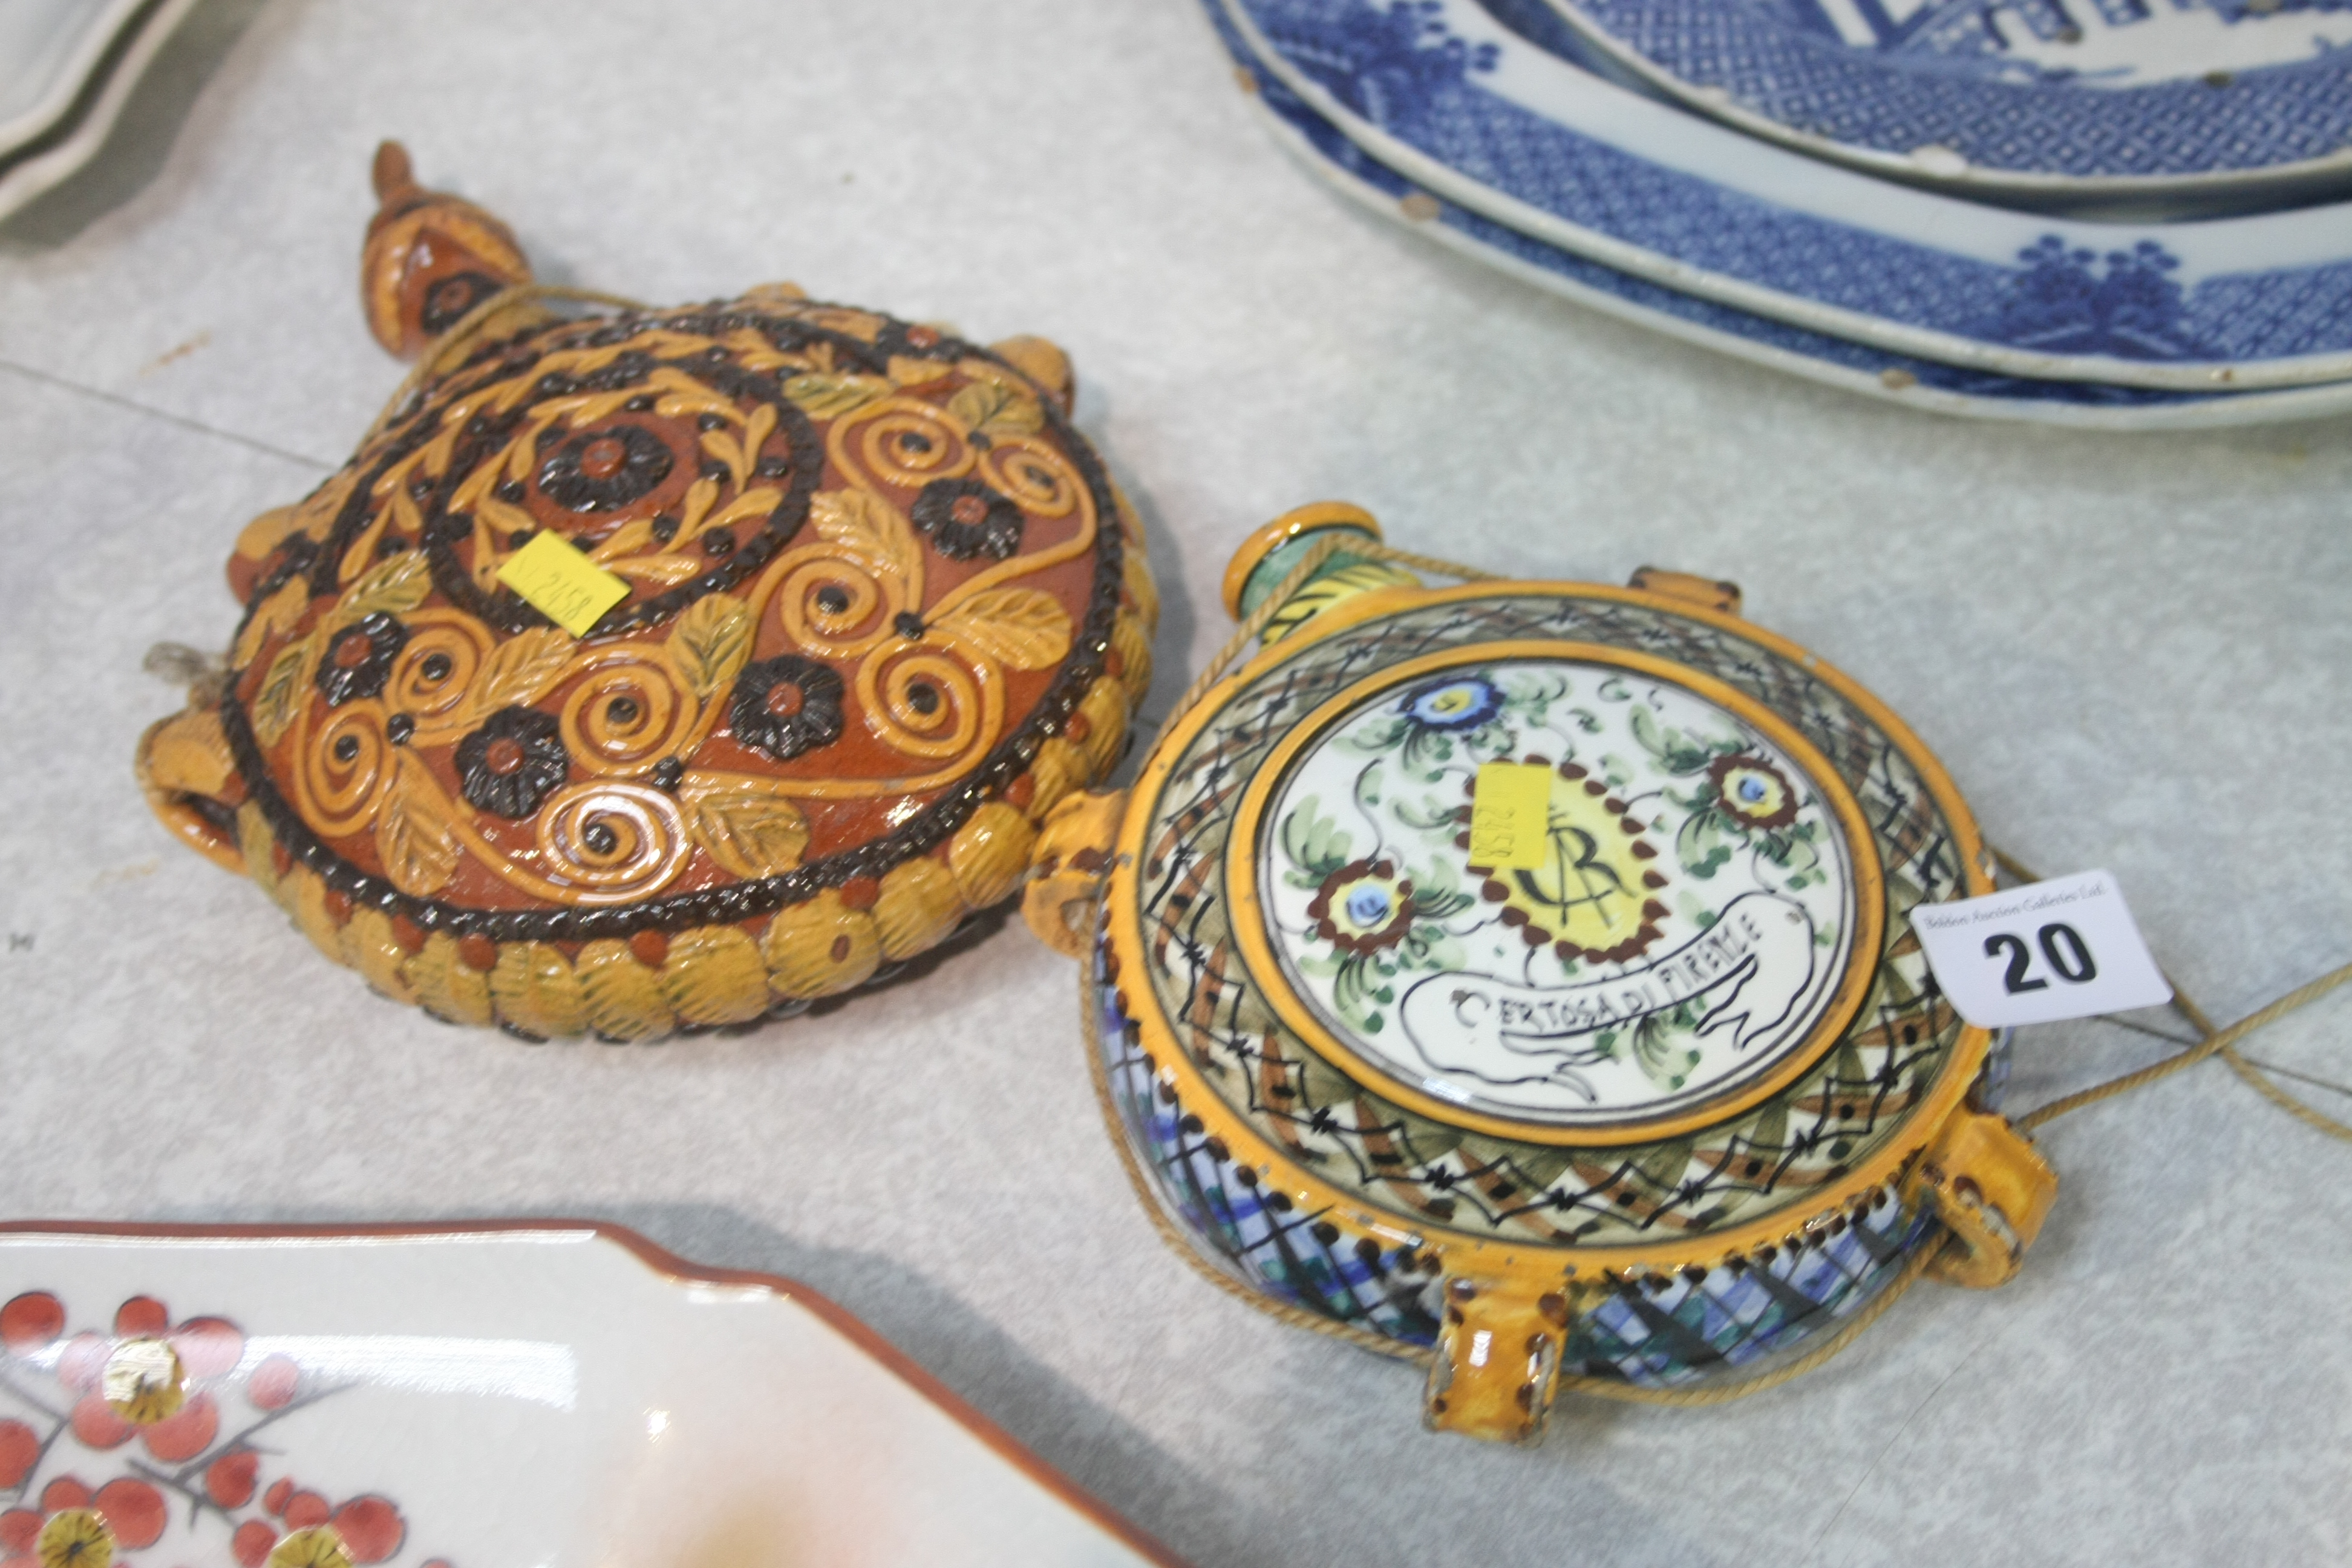 Lot 20 - A Majolica flask and one other